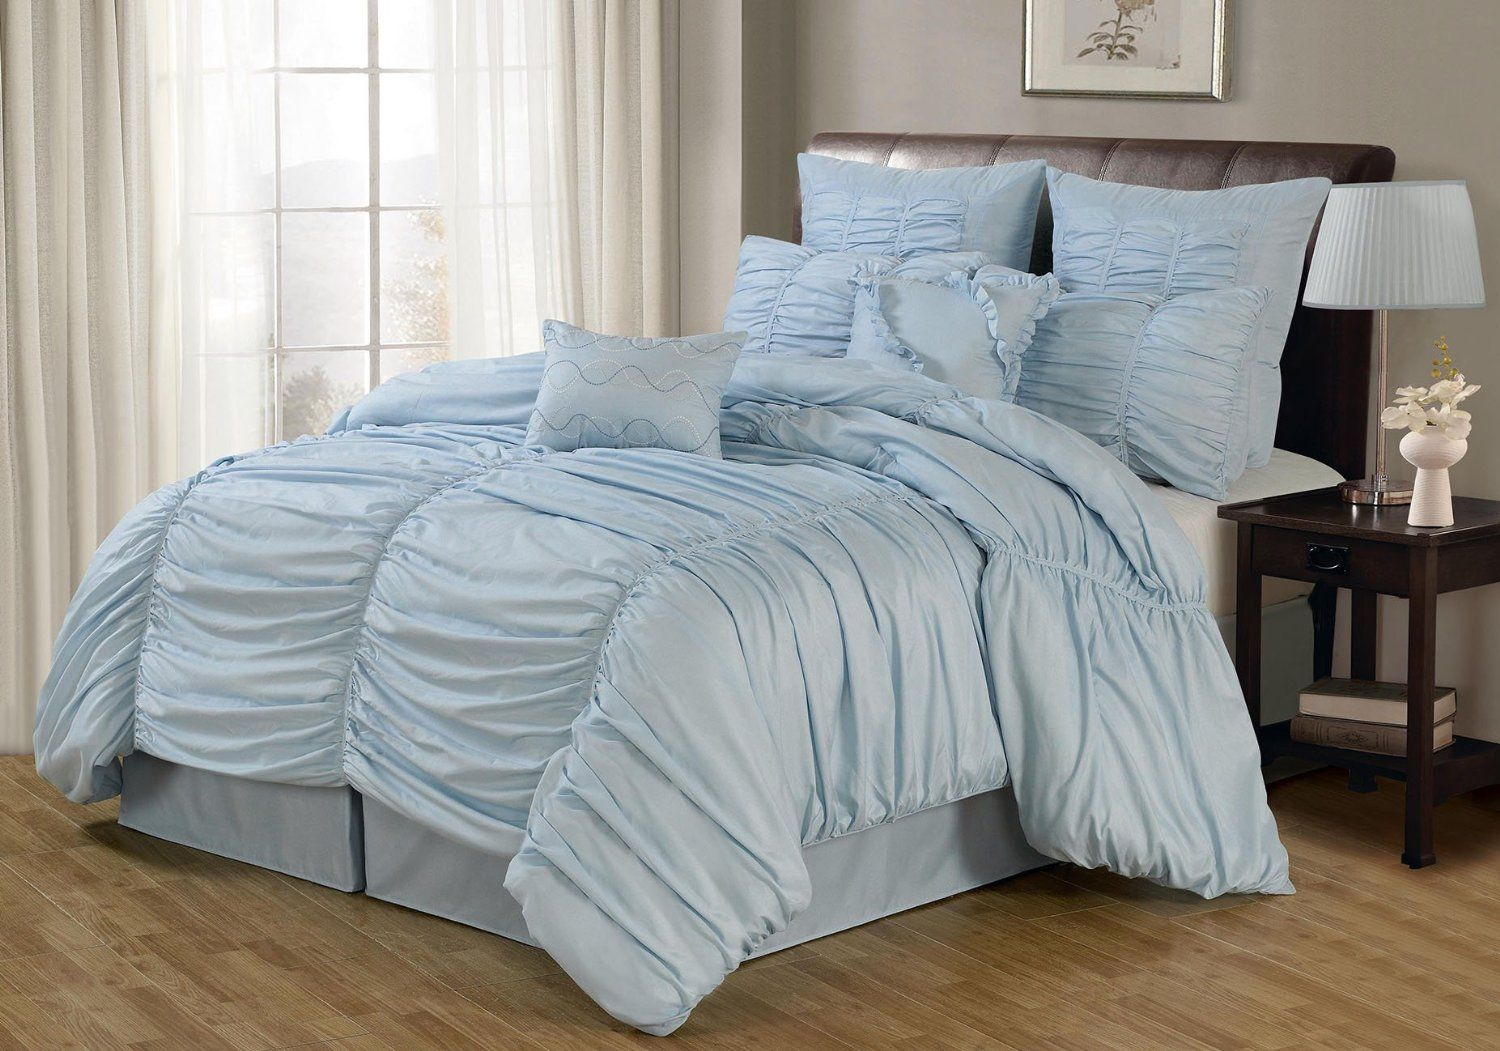 Lacozee 8 Piece Oversized Light Pale Blue Ruched Comforter Set